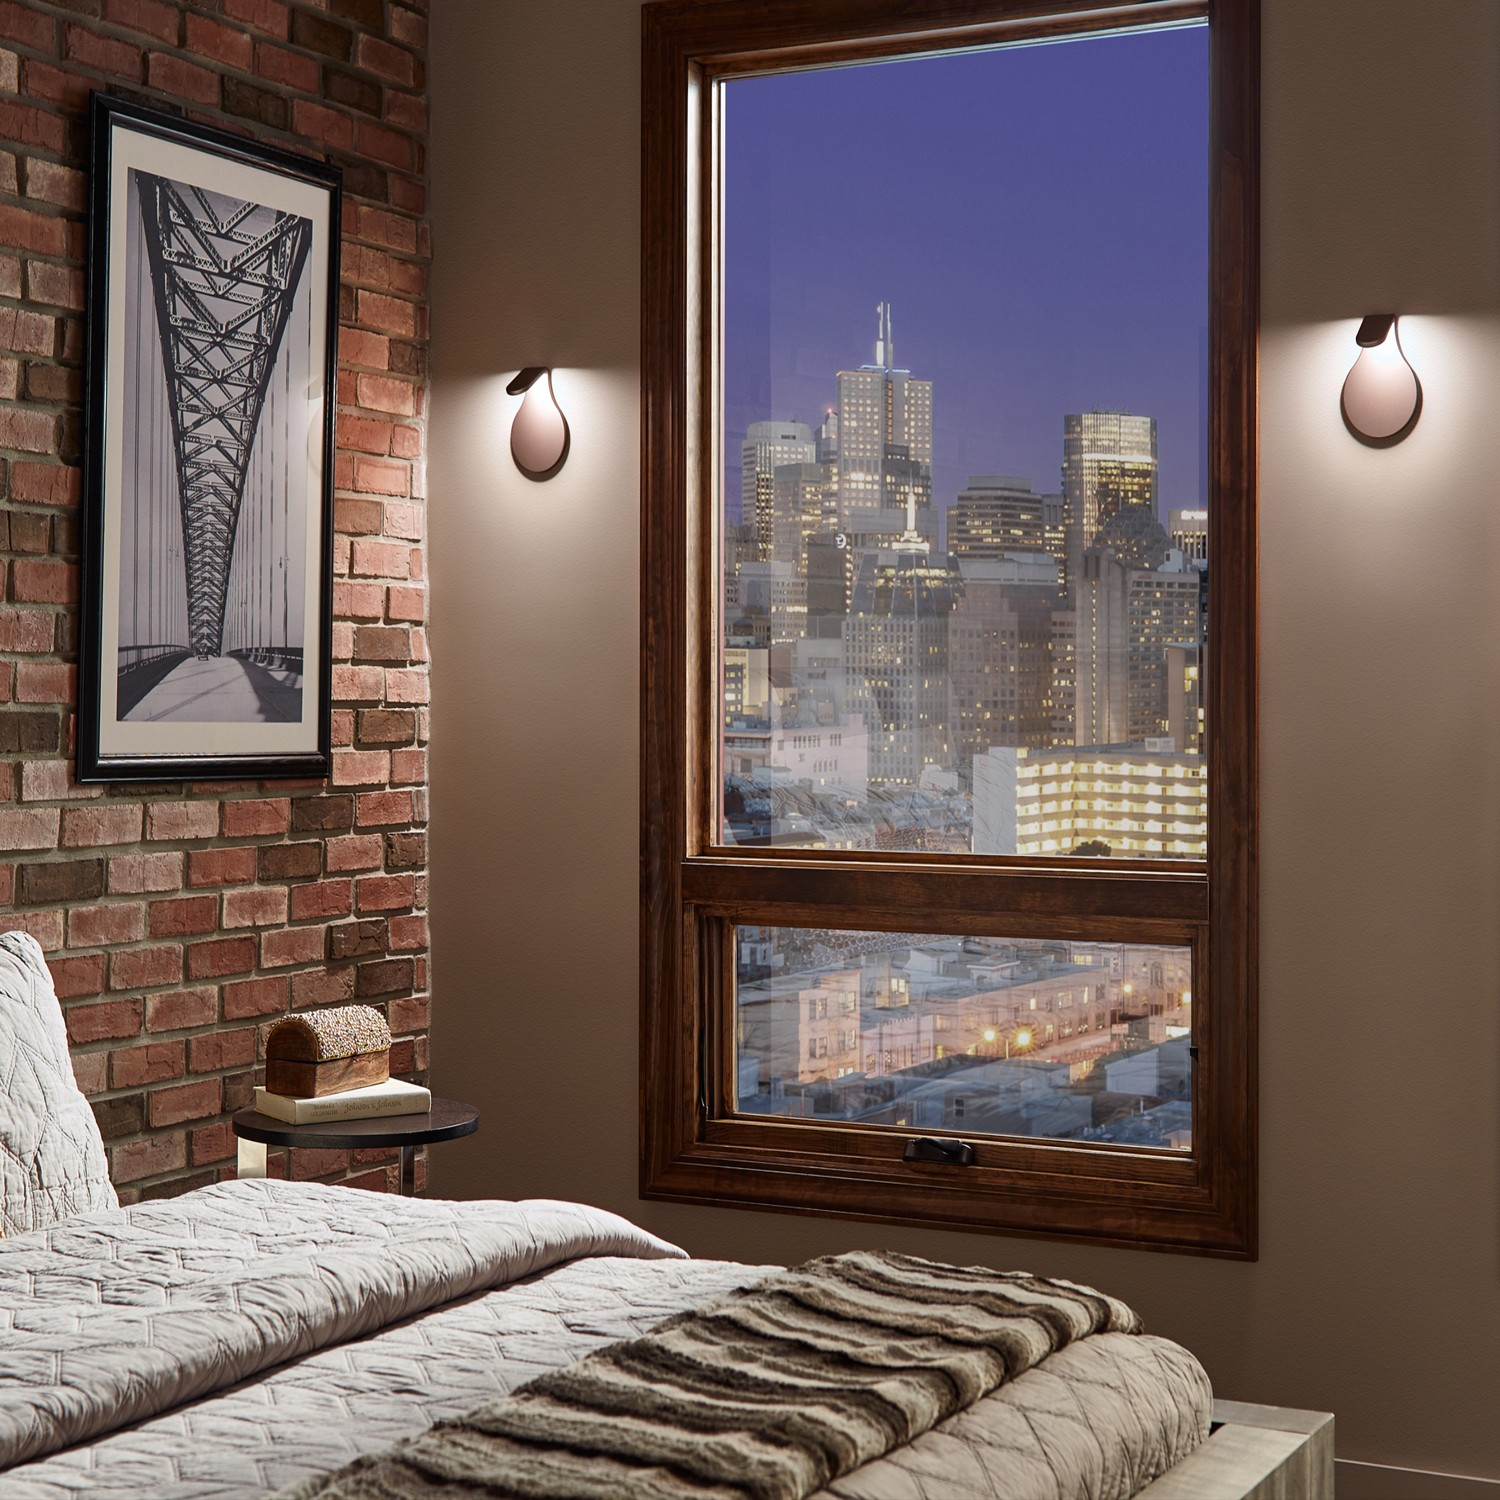 Wall Sconces By Bed : On Trend: Wall Sconces in the Bedroom Design Necessities Lighting